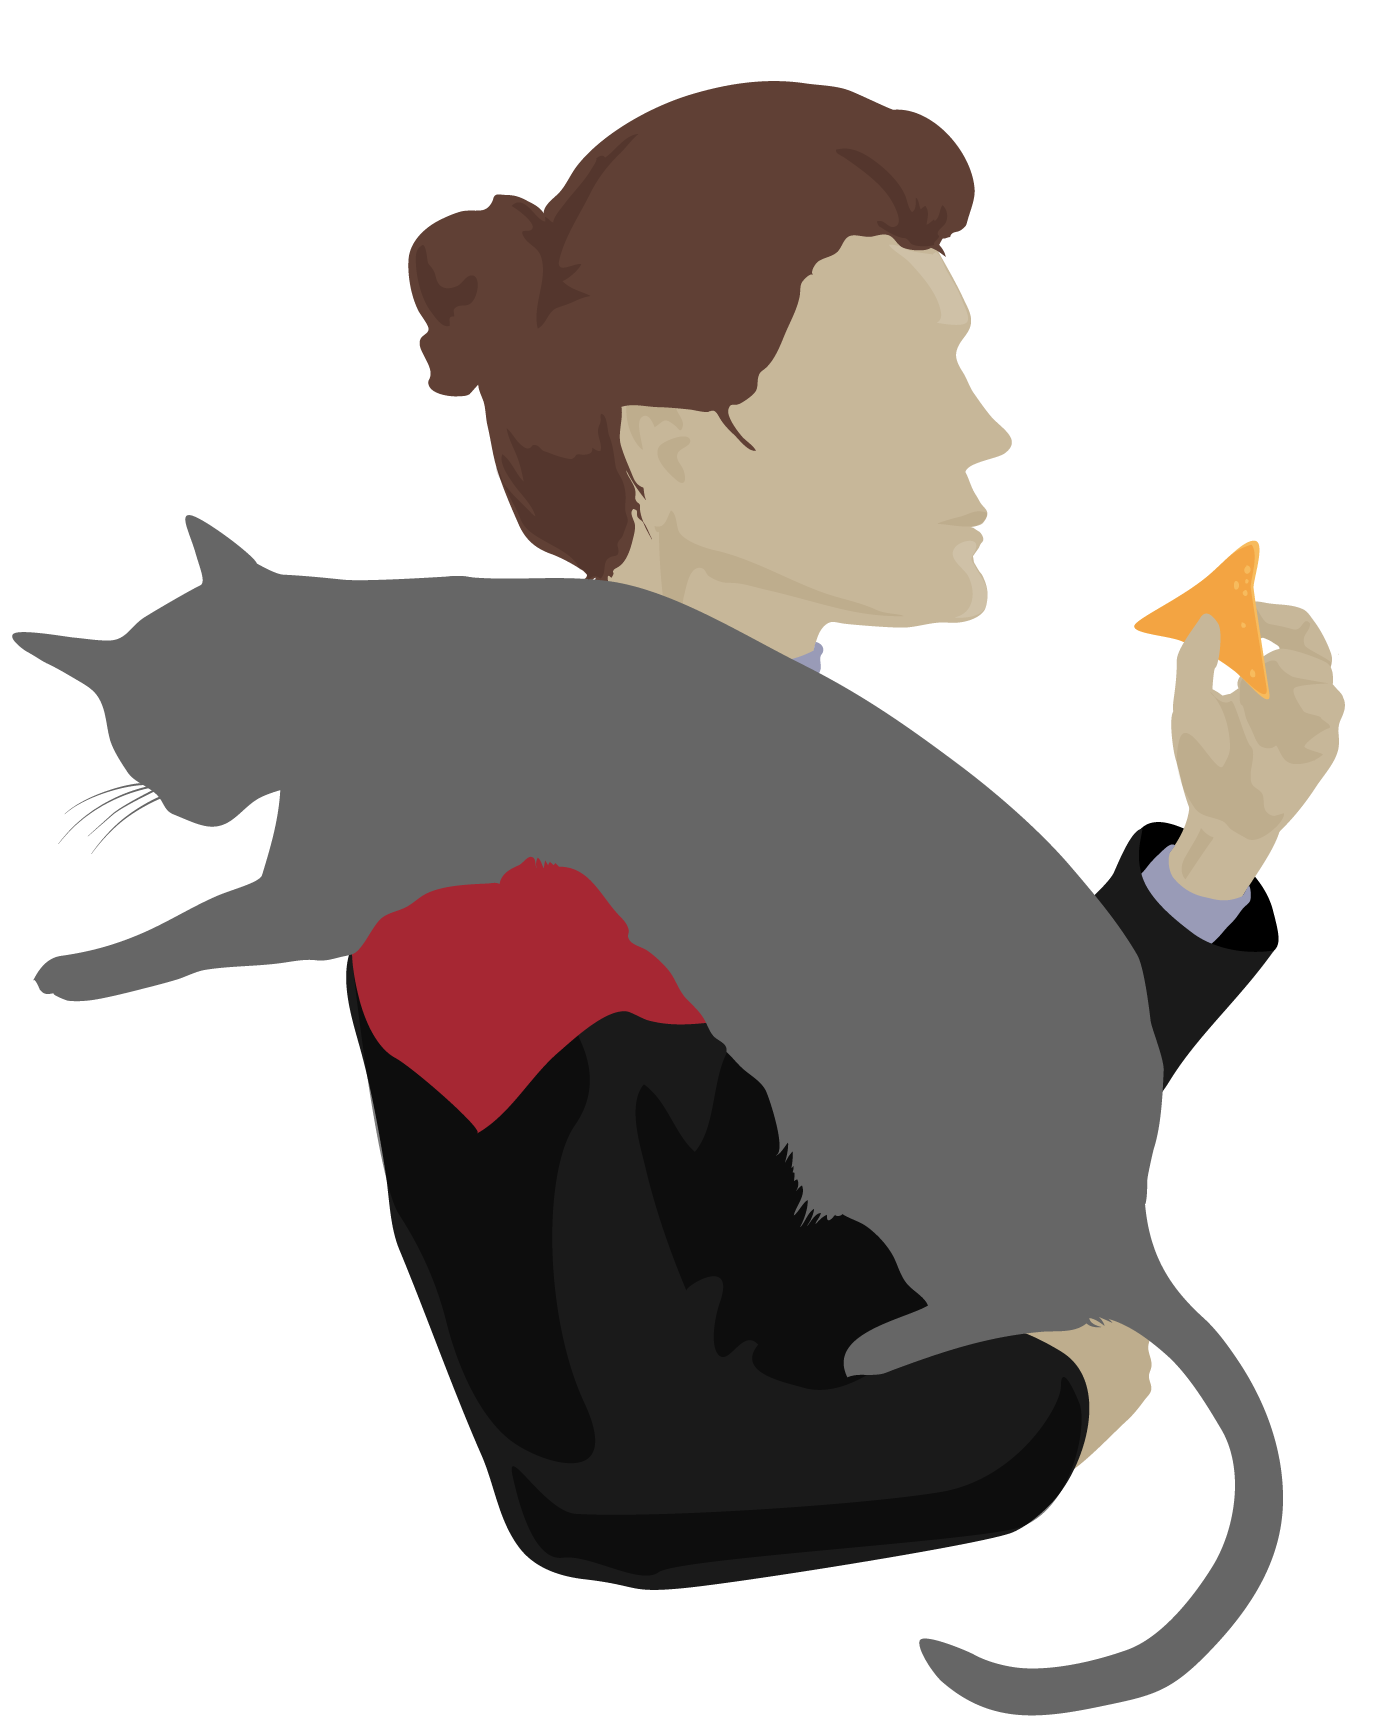 Captain Janeway about to eat a dorito and holding a cat